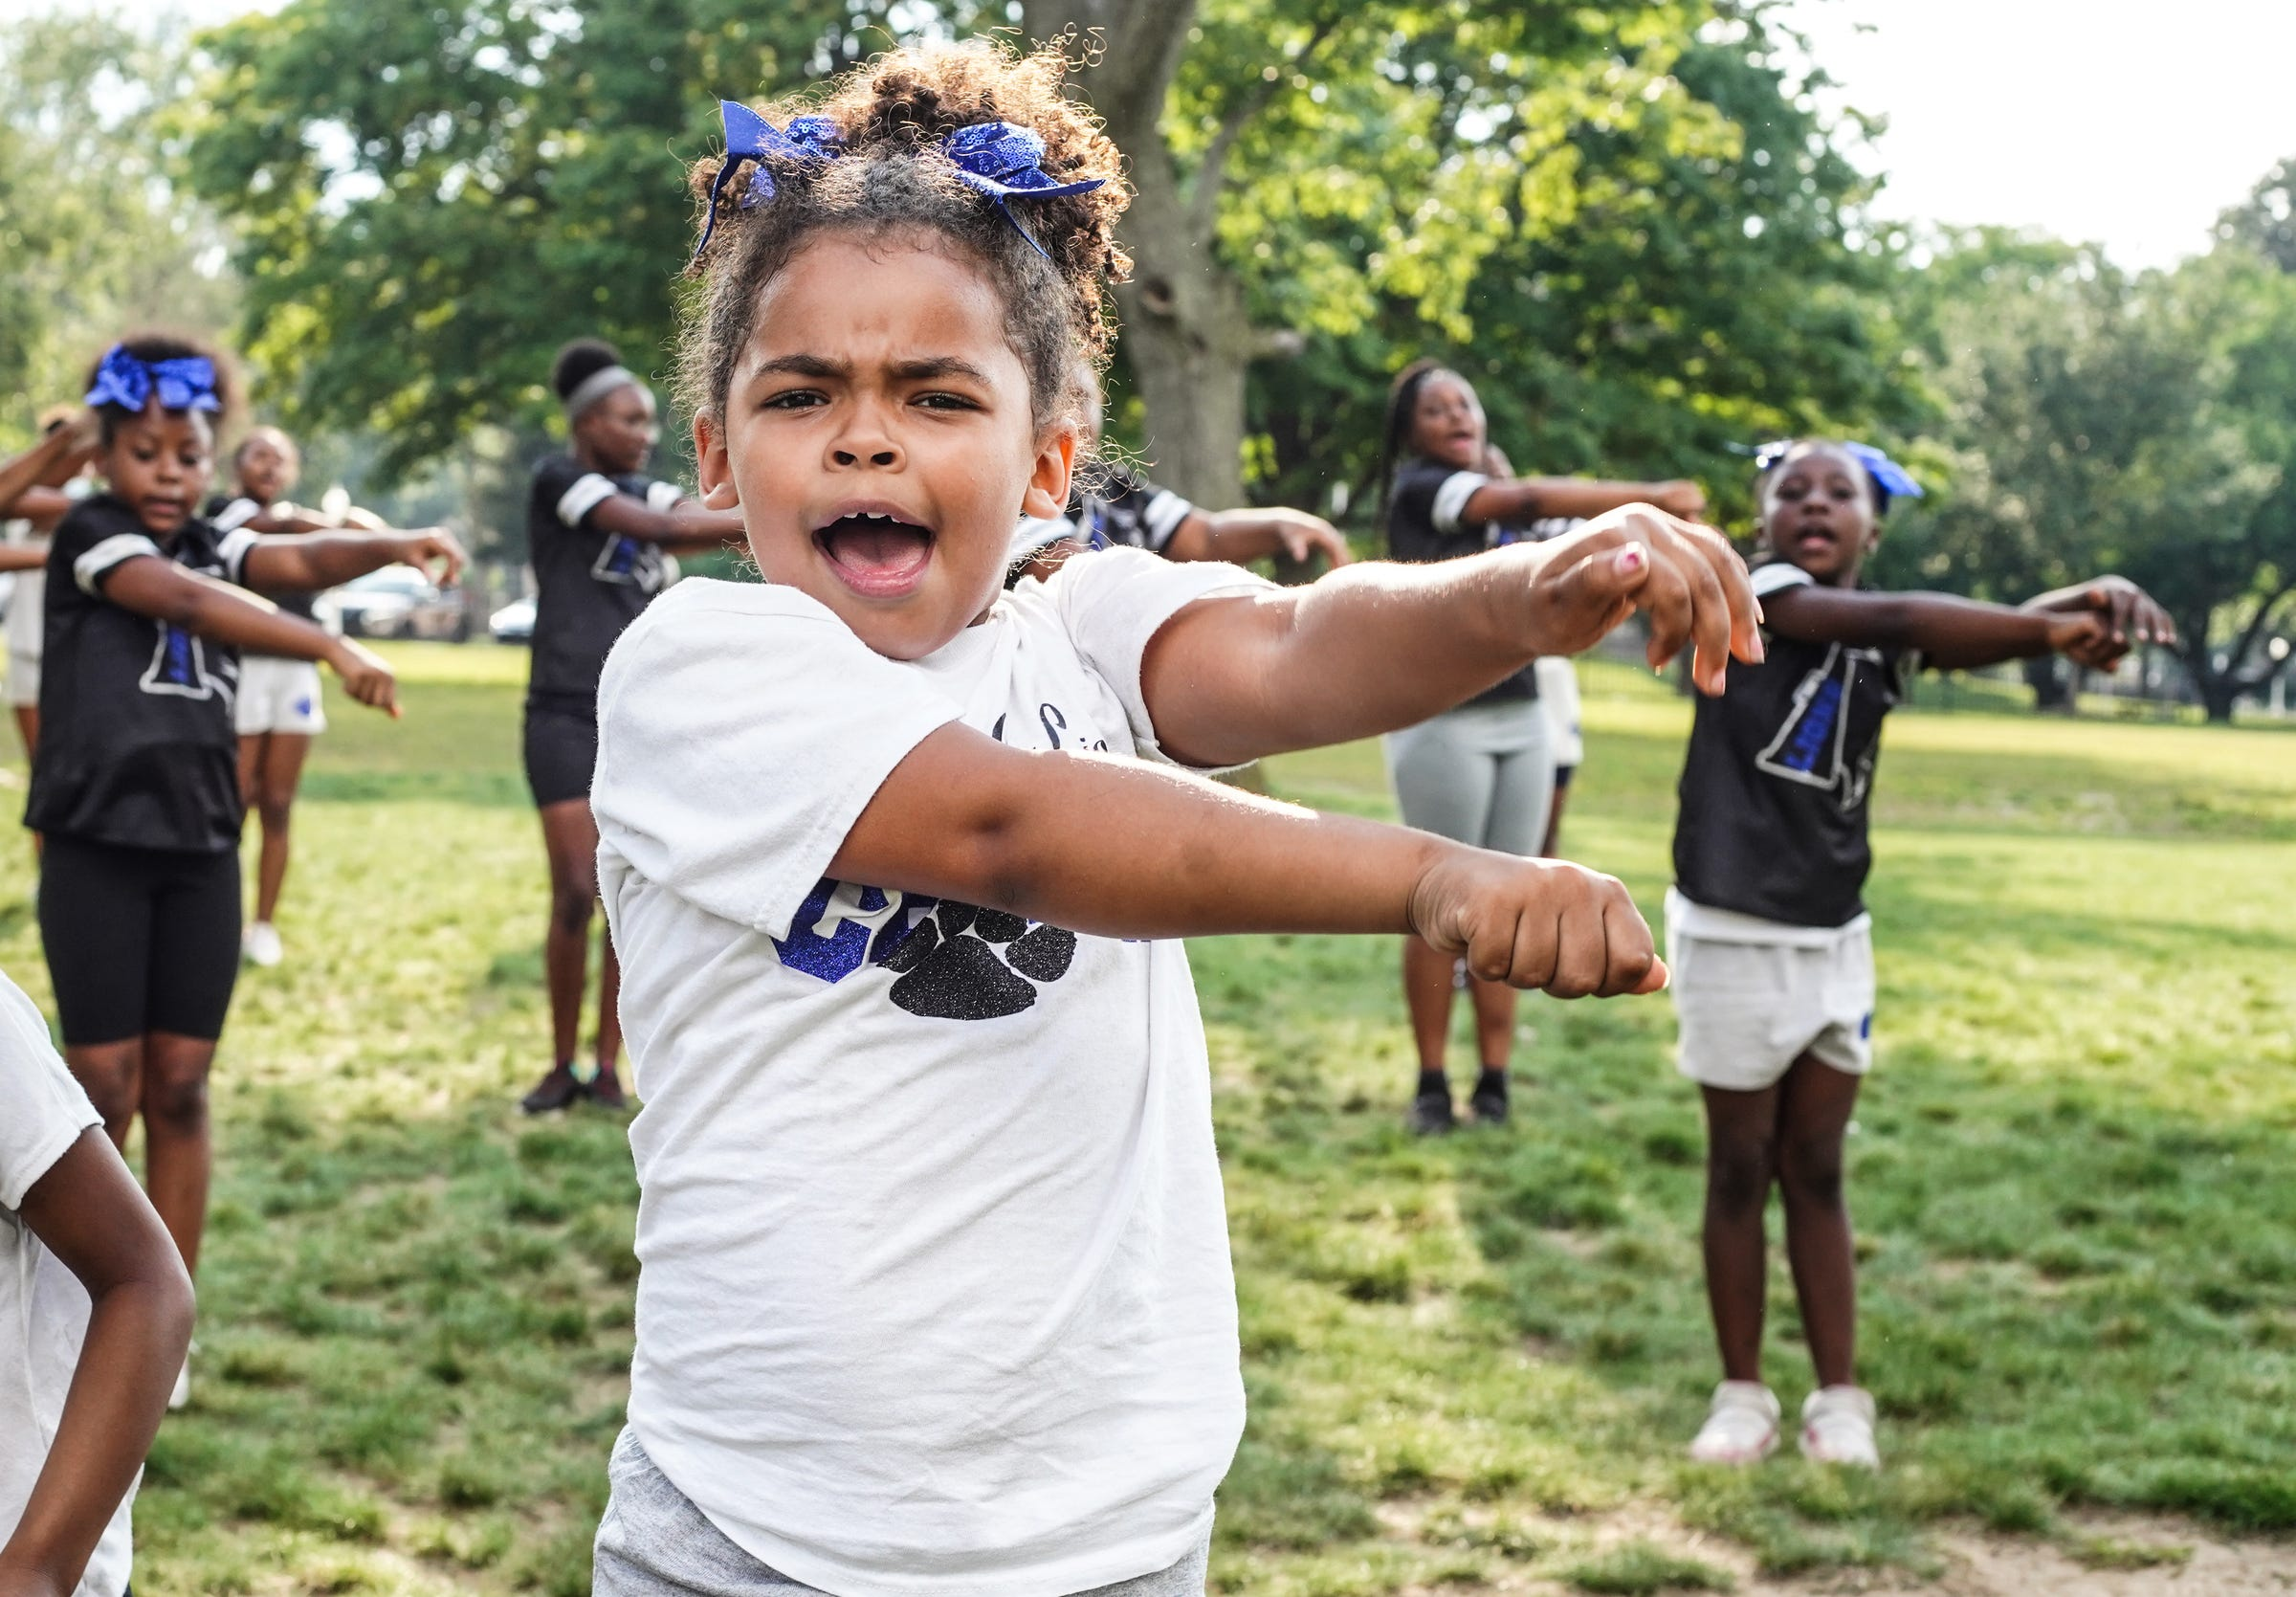 Detroit City Lions cheer team at Marygrove College in Detroit on July 29, 2021. Detroit City Lions, a youth program founded by Devon Buskin is more than a youth football program. The program offers robotics classes, volleyball, musical arts along with football and cheer.